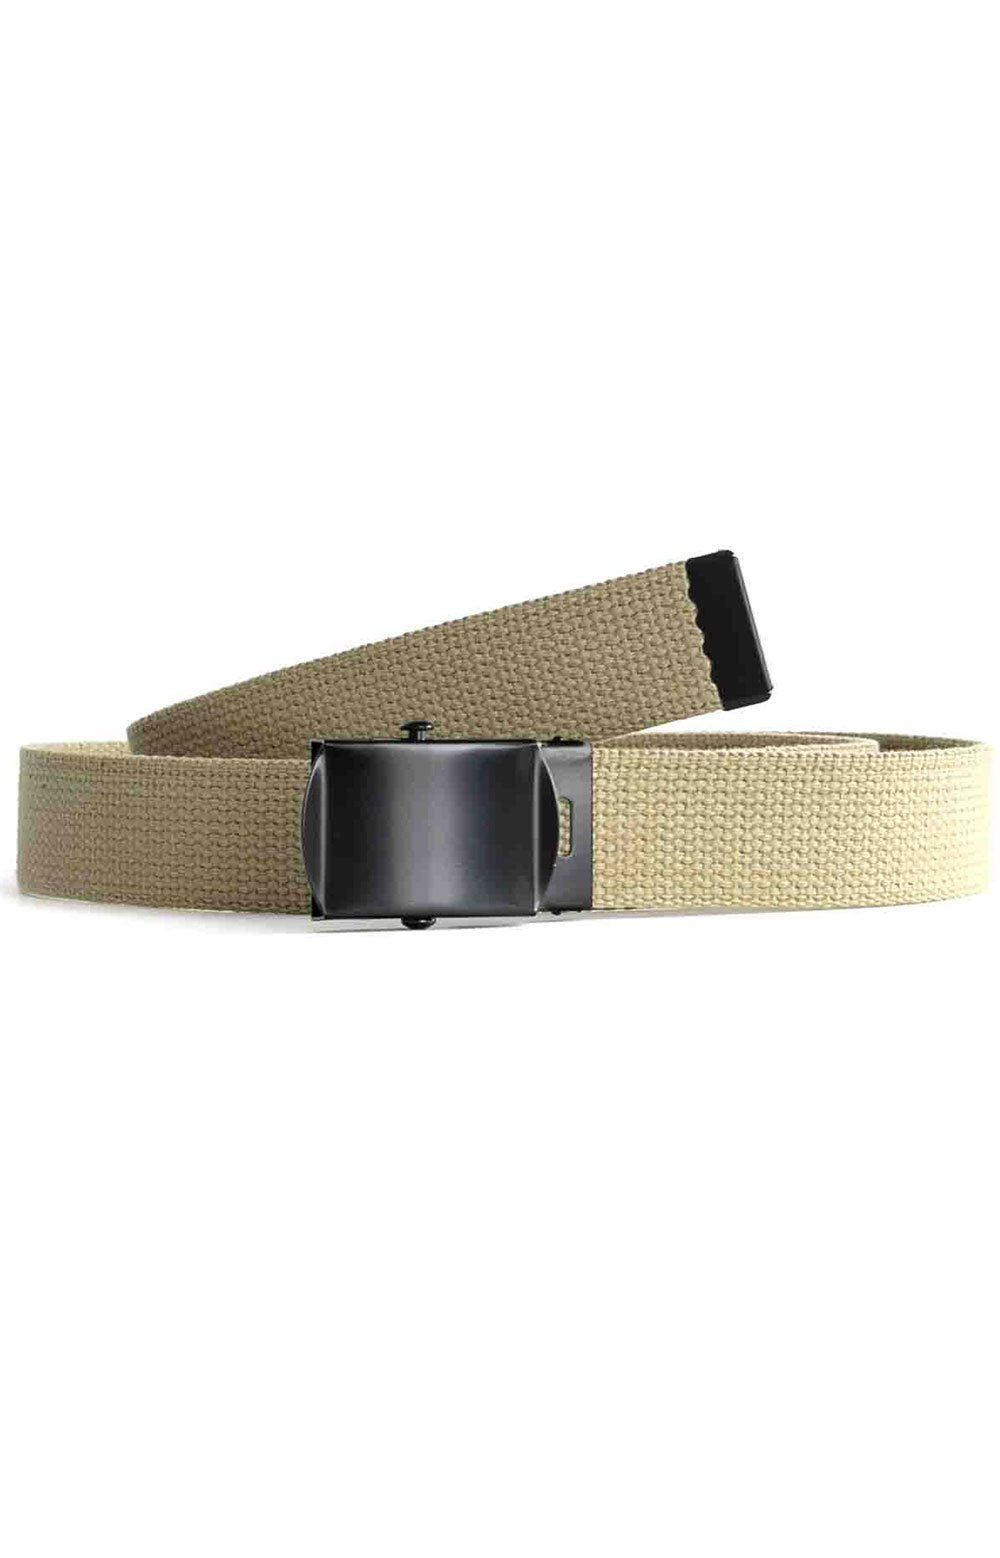 (4294) Military Web Belt With Black Buckle - Khaki 2